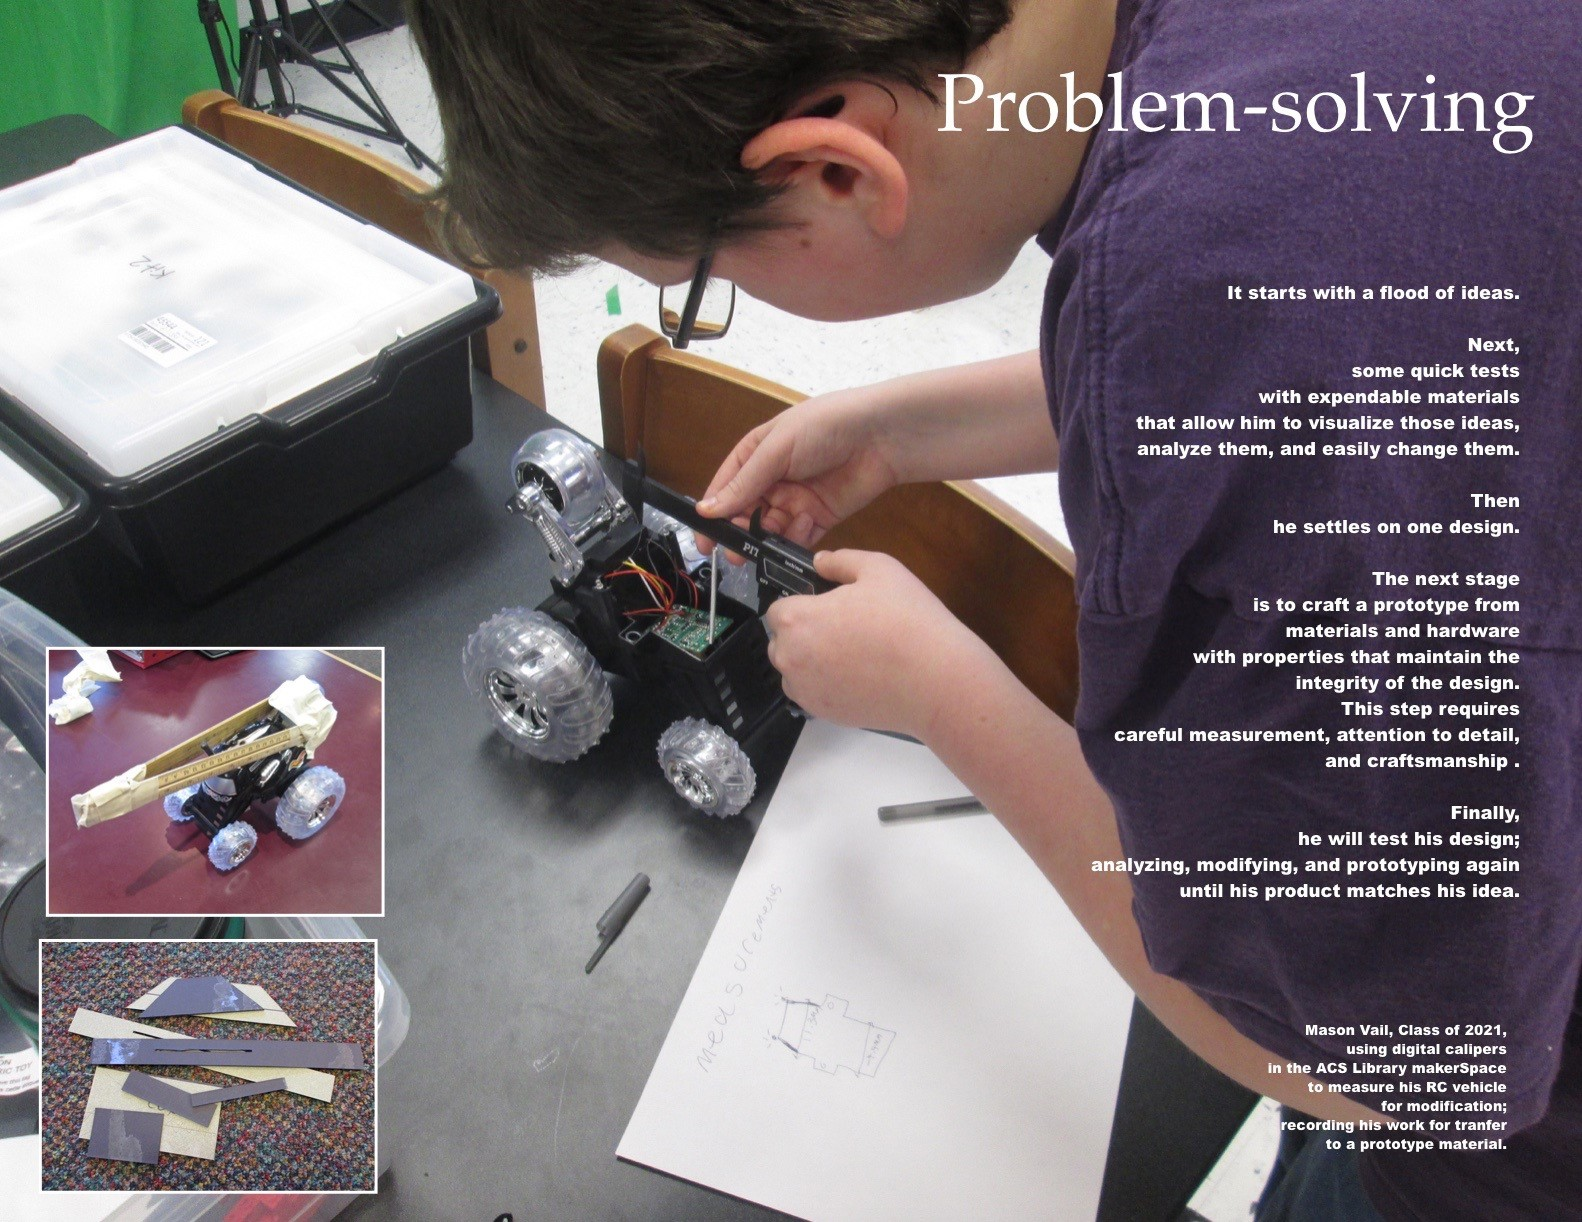 ACSLIB Poster: Celebrating student proble-solving RC race car design.